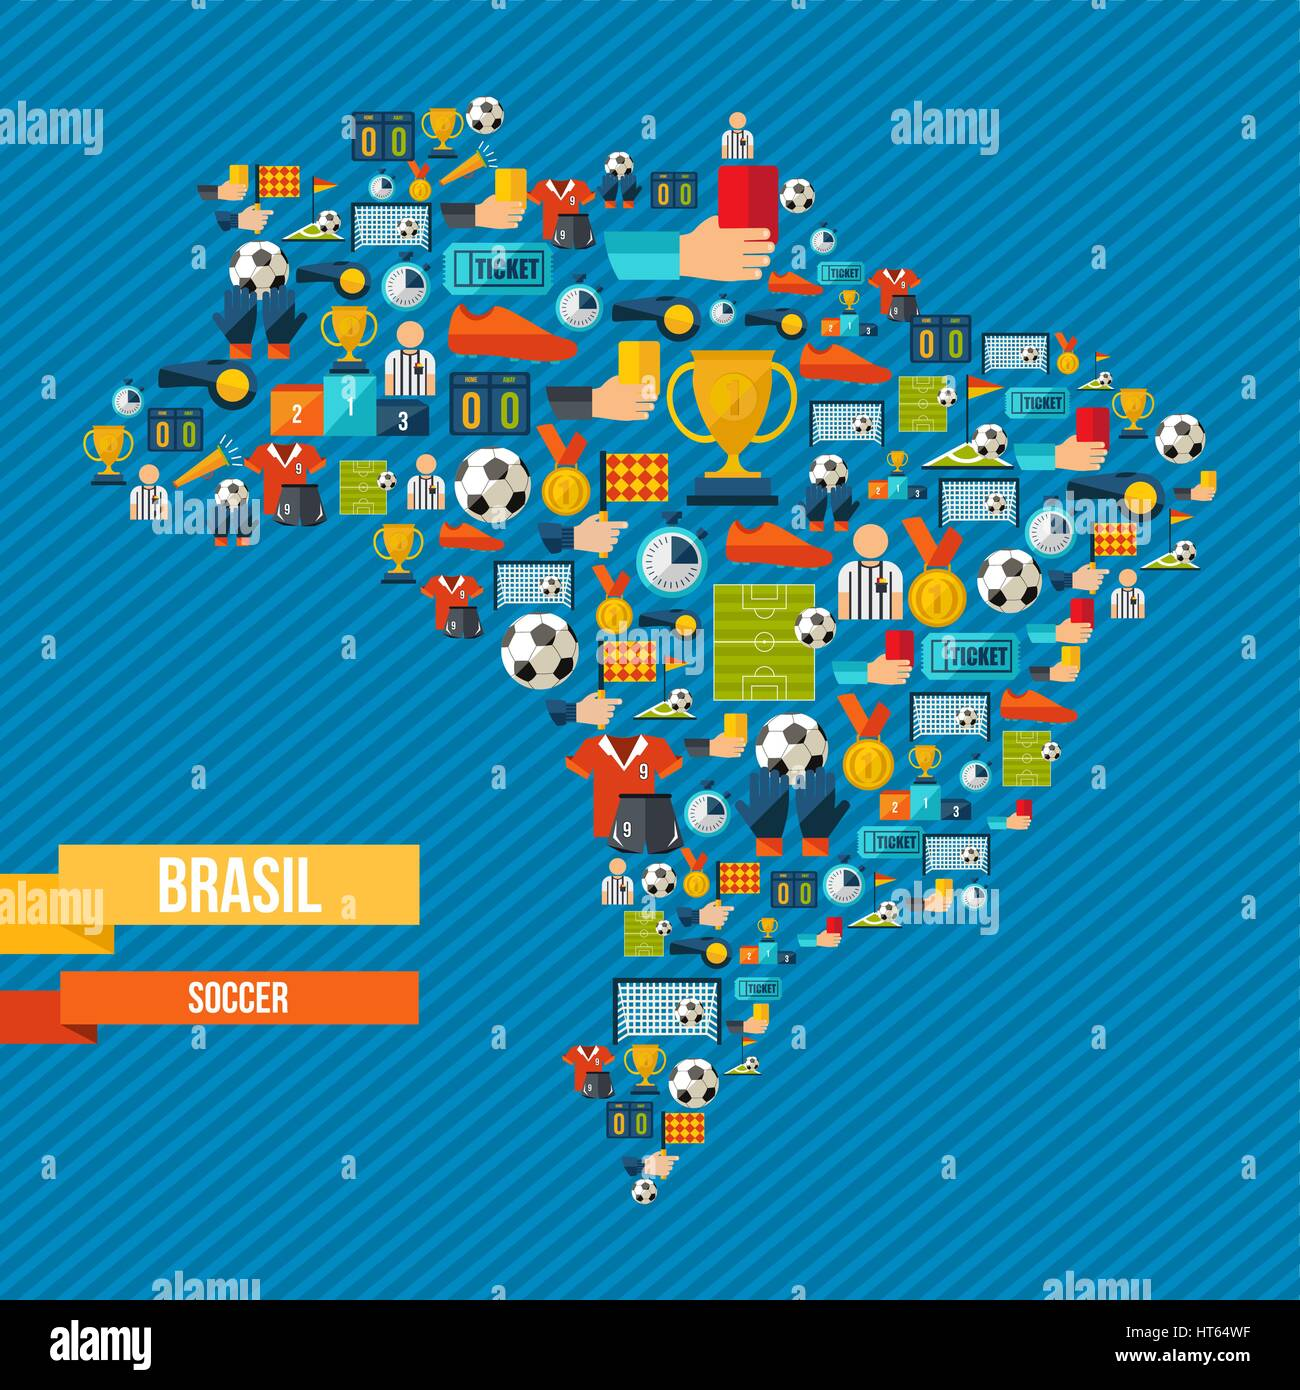 Brazil soccer culture icons in country map includes sport elements brazil soccer culture icons in country map includes sport elements for football game ball shoes champion cup and more eps10 vector gumiabroncs Image collections